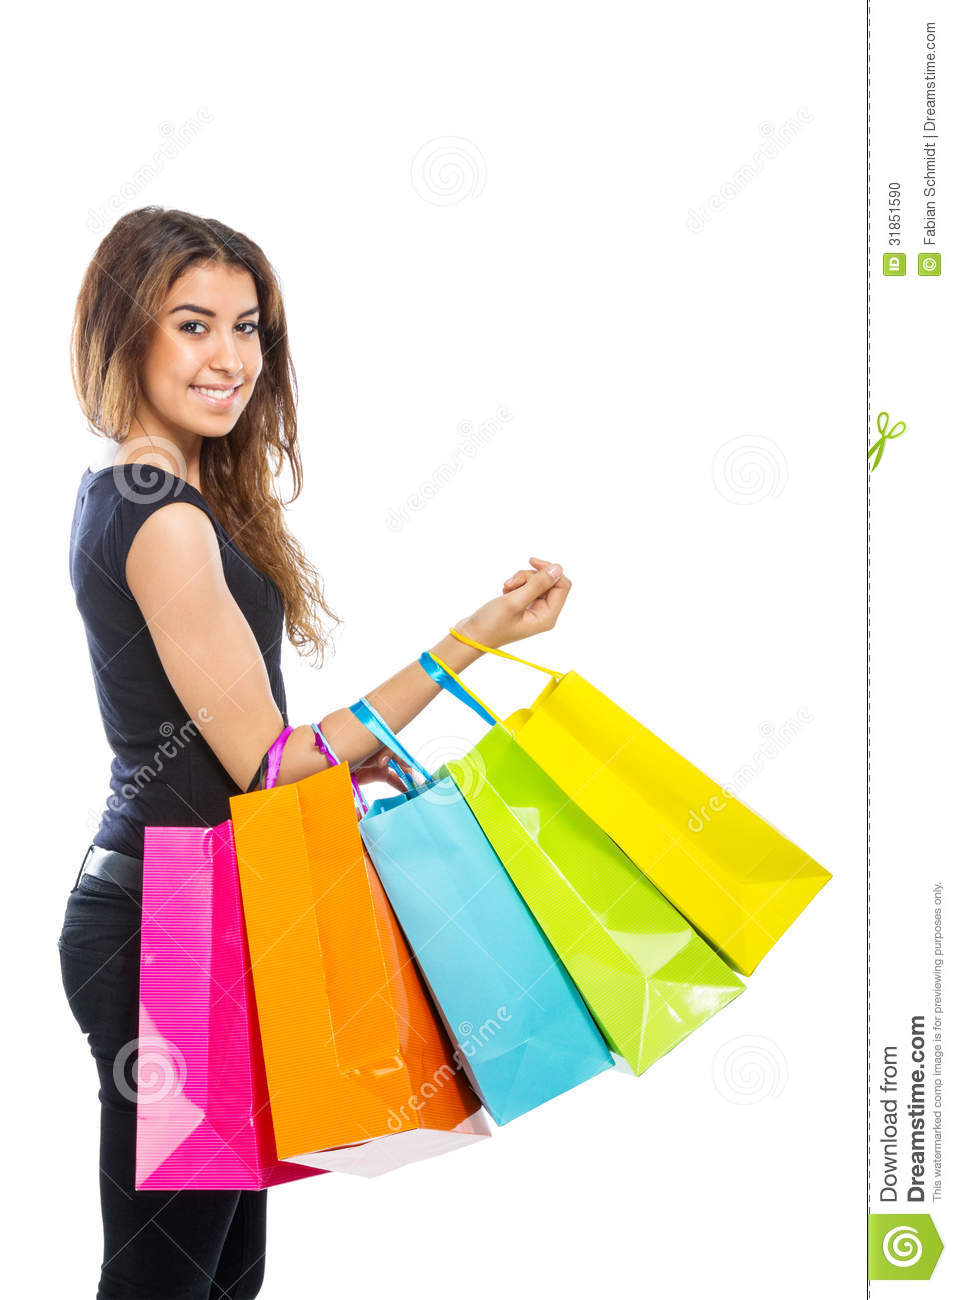 Girl With A Lot Of Shopping Bags Stock Photo - Image: 31851590